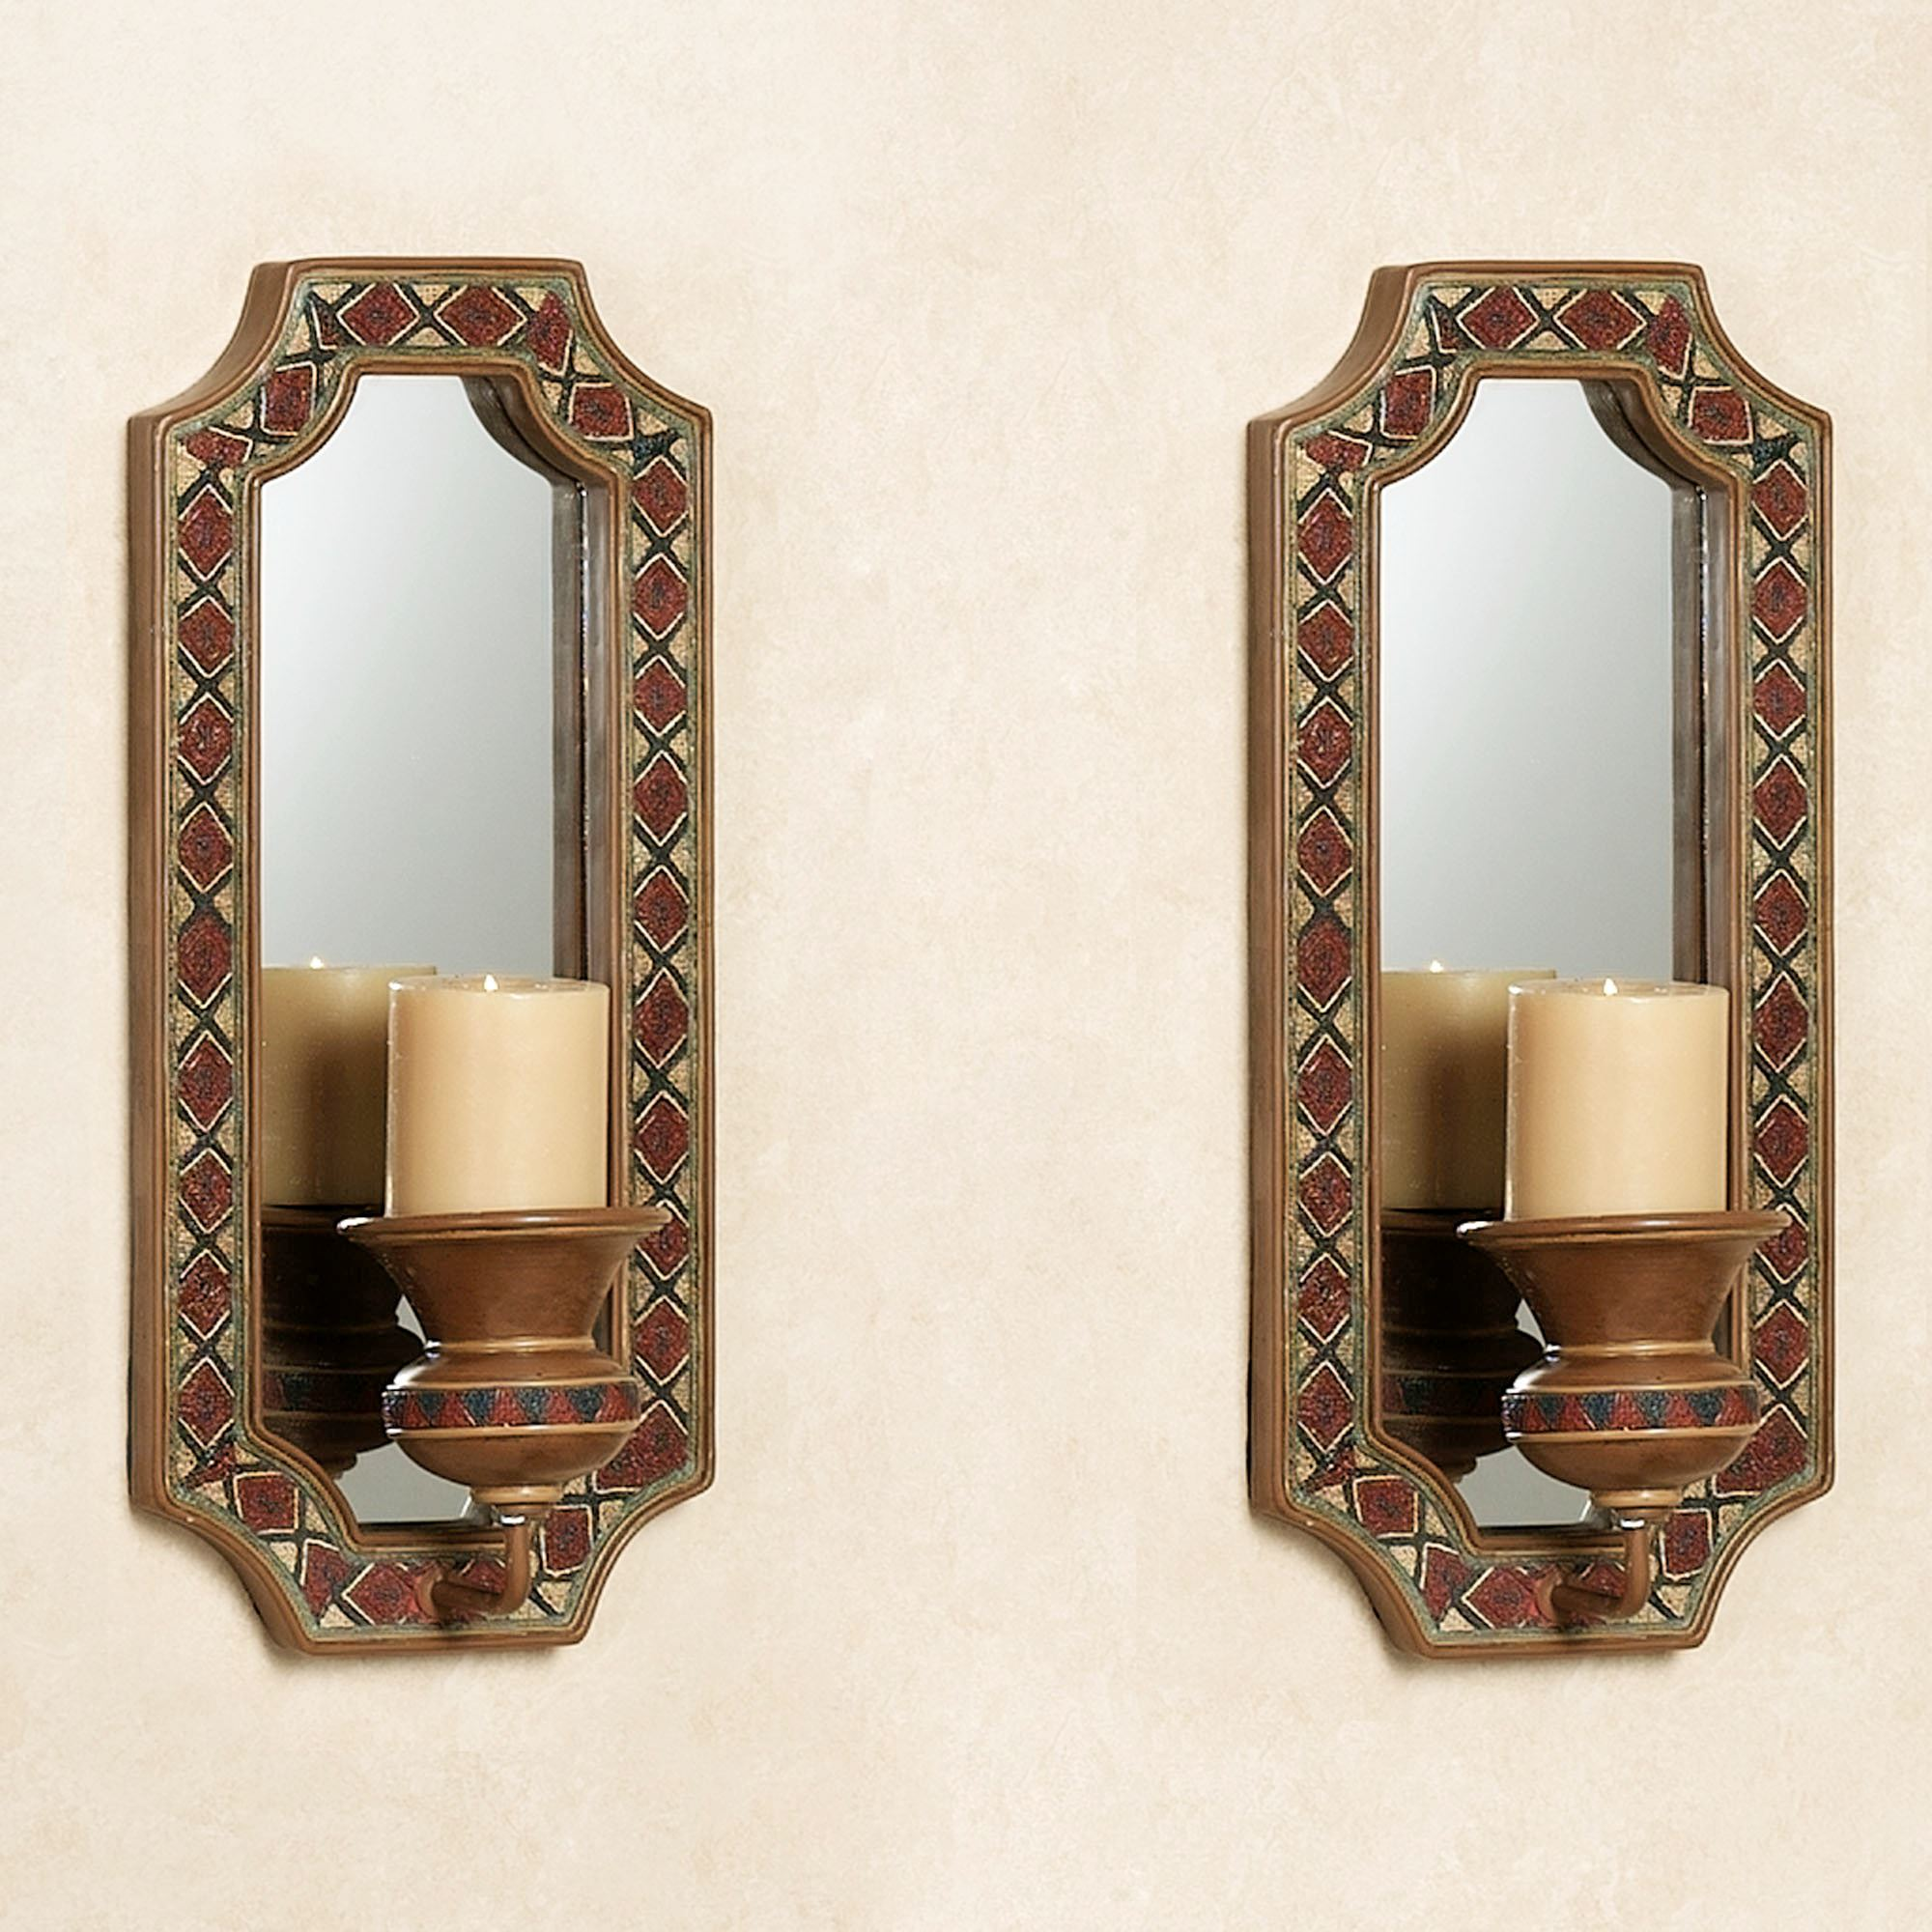 regarding wall ideas light mirrored lighting modern sconce mirrors antique x proportions mirror led sconces